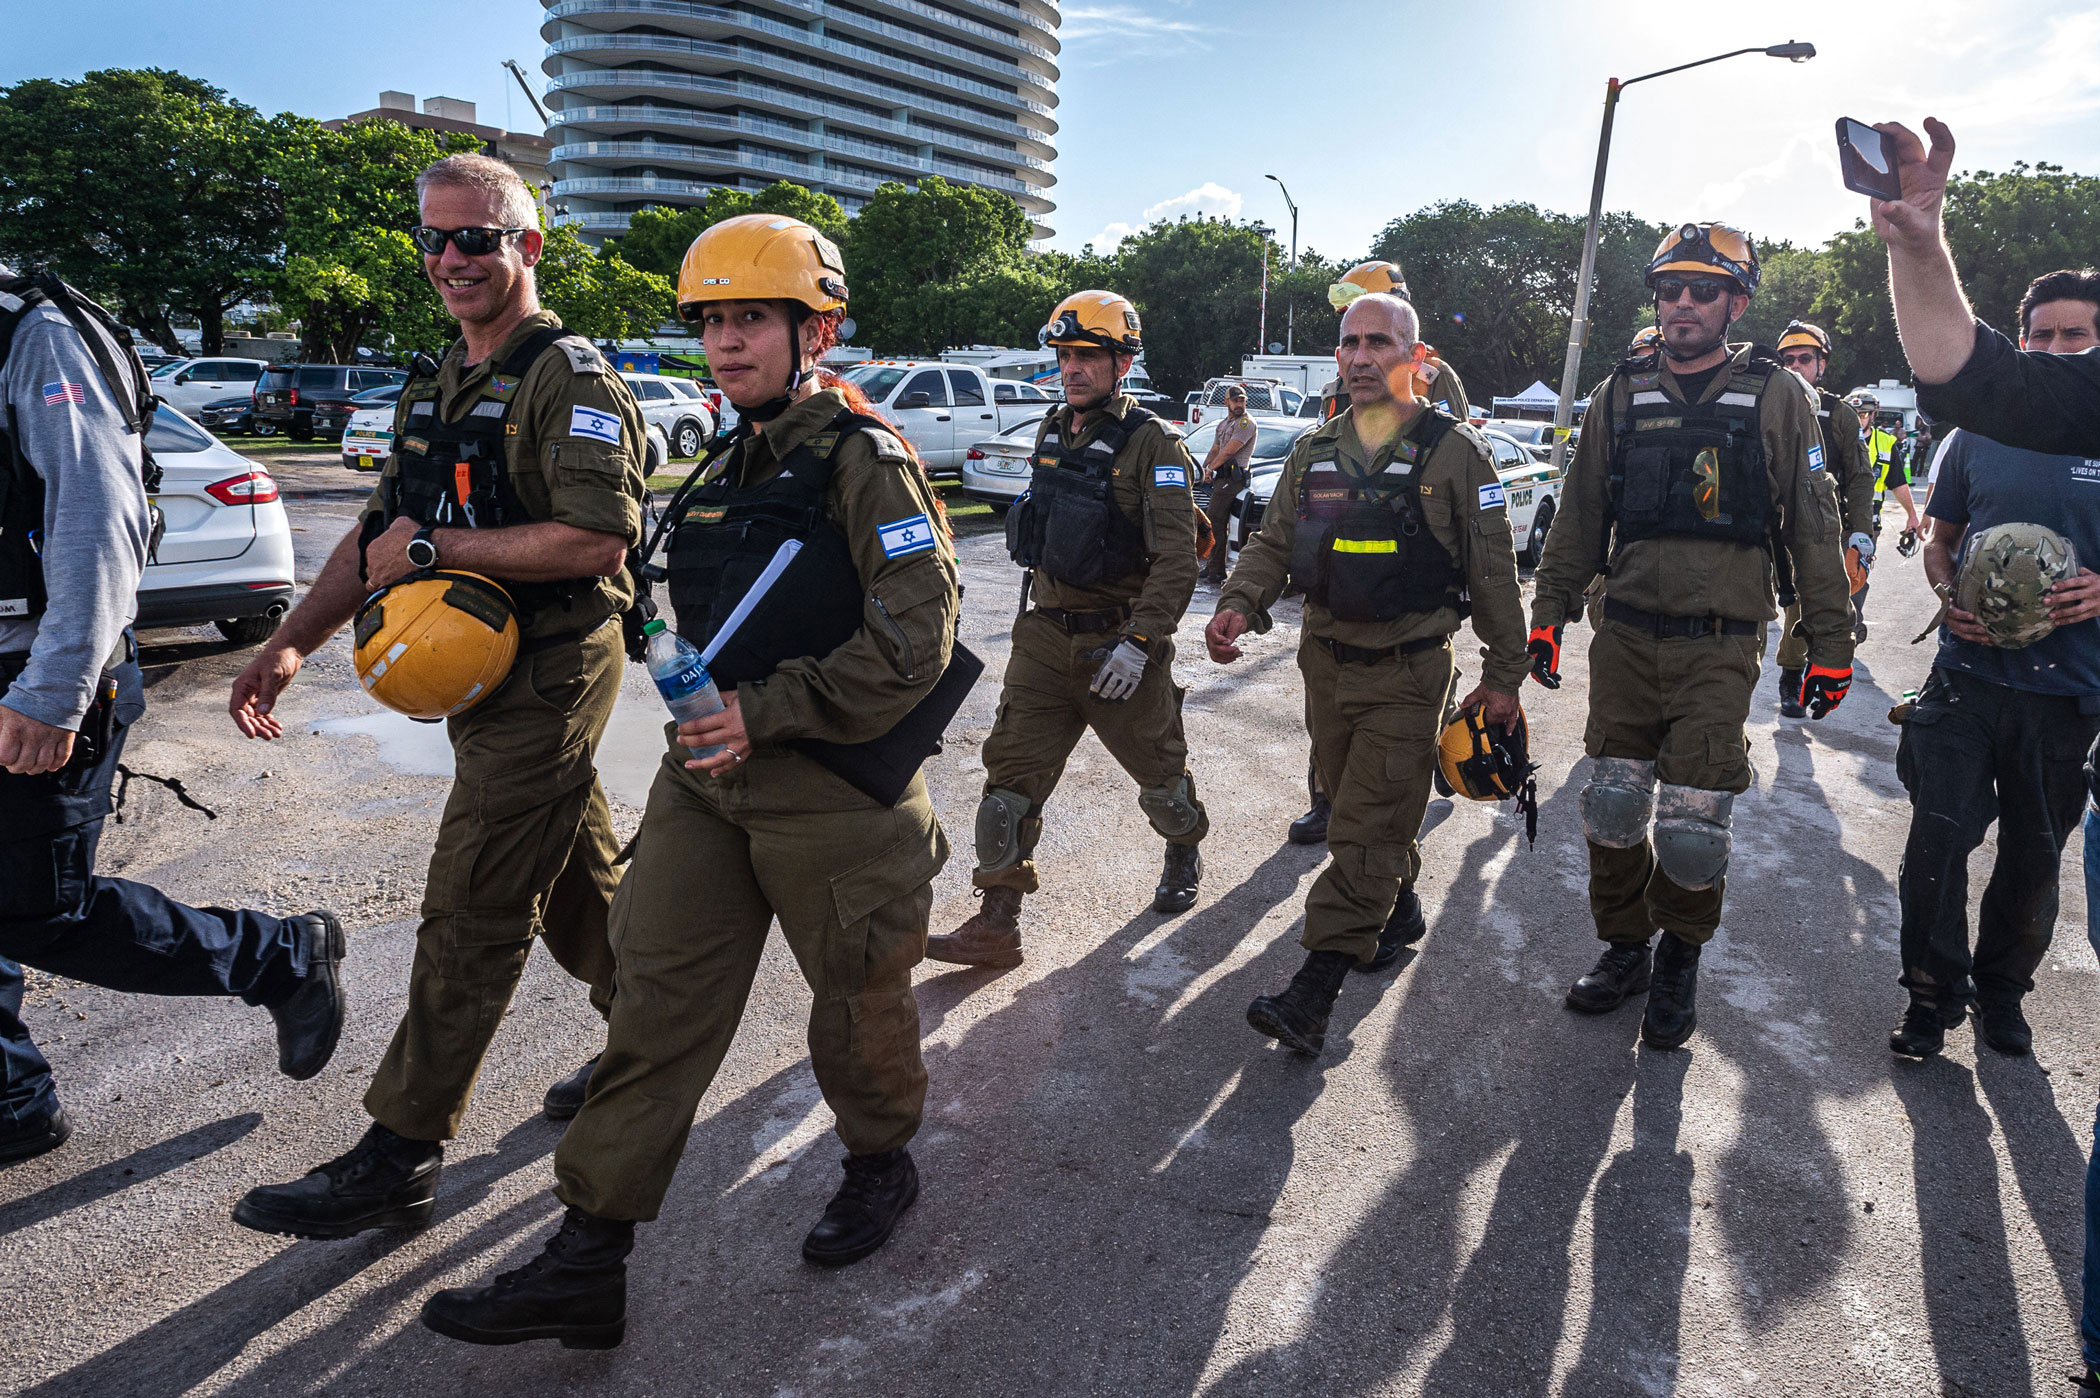 Members of the Israel Rescuers delegation gather upon their arrival in the area near the partially collapsed 12-story Champlain Towers South condo building in the city of Surfside, Florida, on Sunday, June 27.